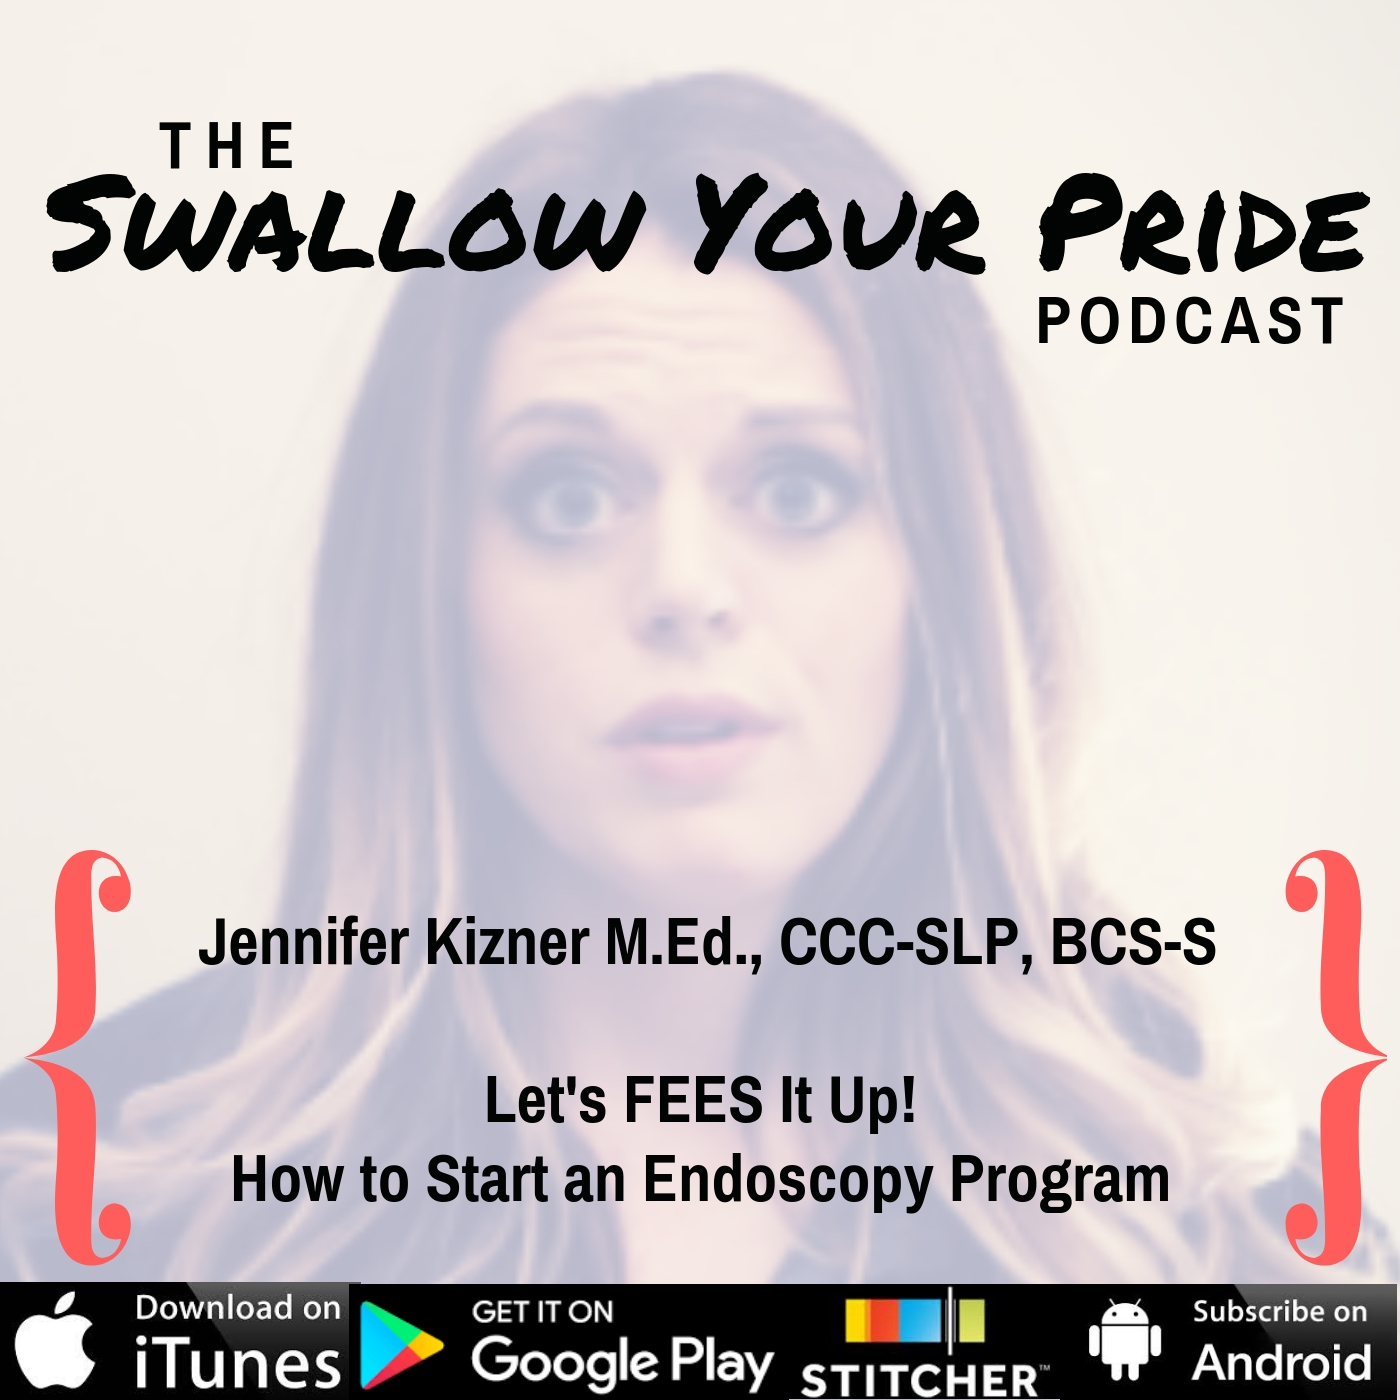 083 – Jennifer Kizner M.Ed CCC/SLP, BCS-S – Let's FEES It Up!  How to Start an Endoscopy Program – Part 2